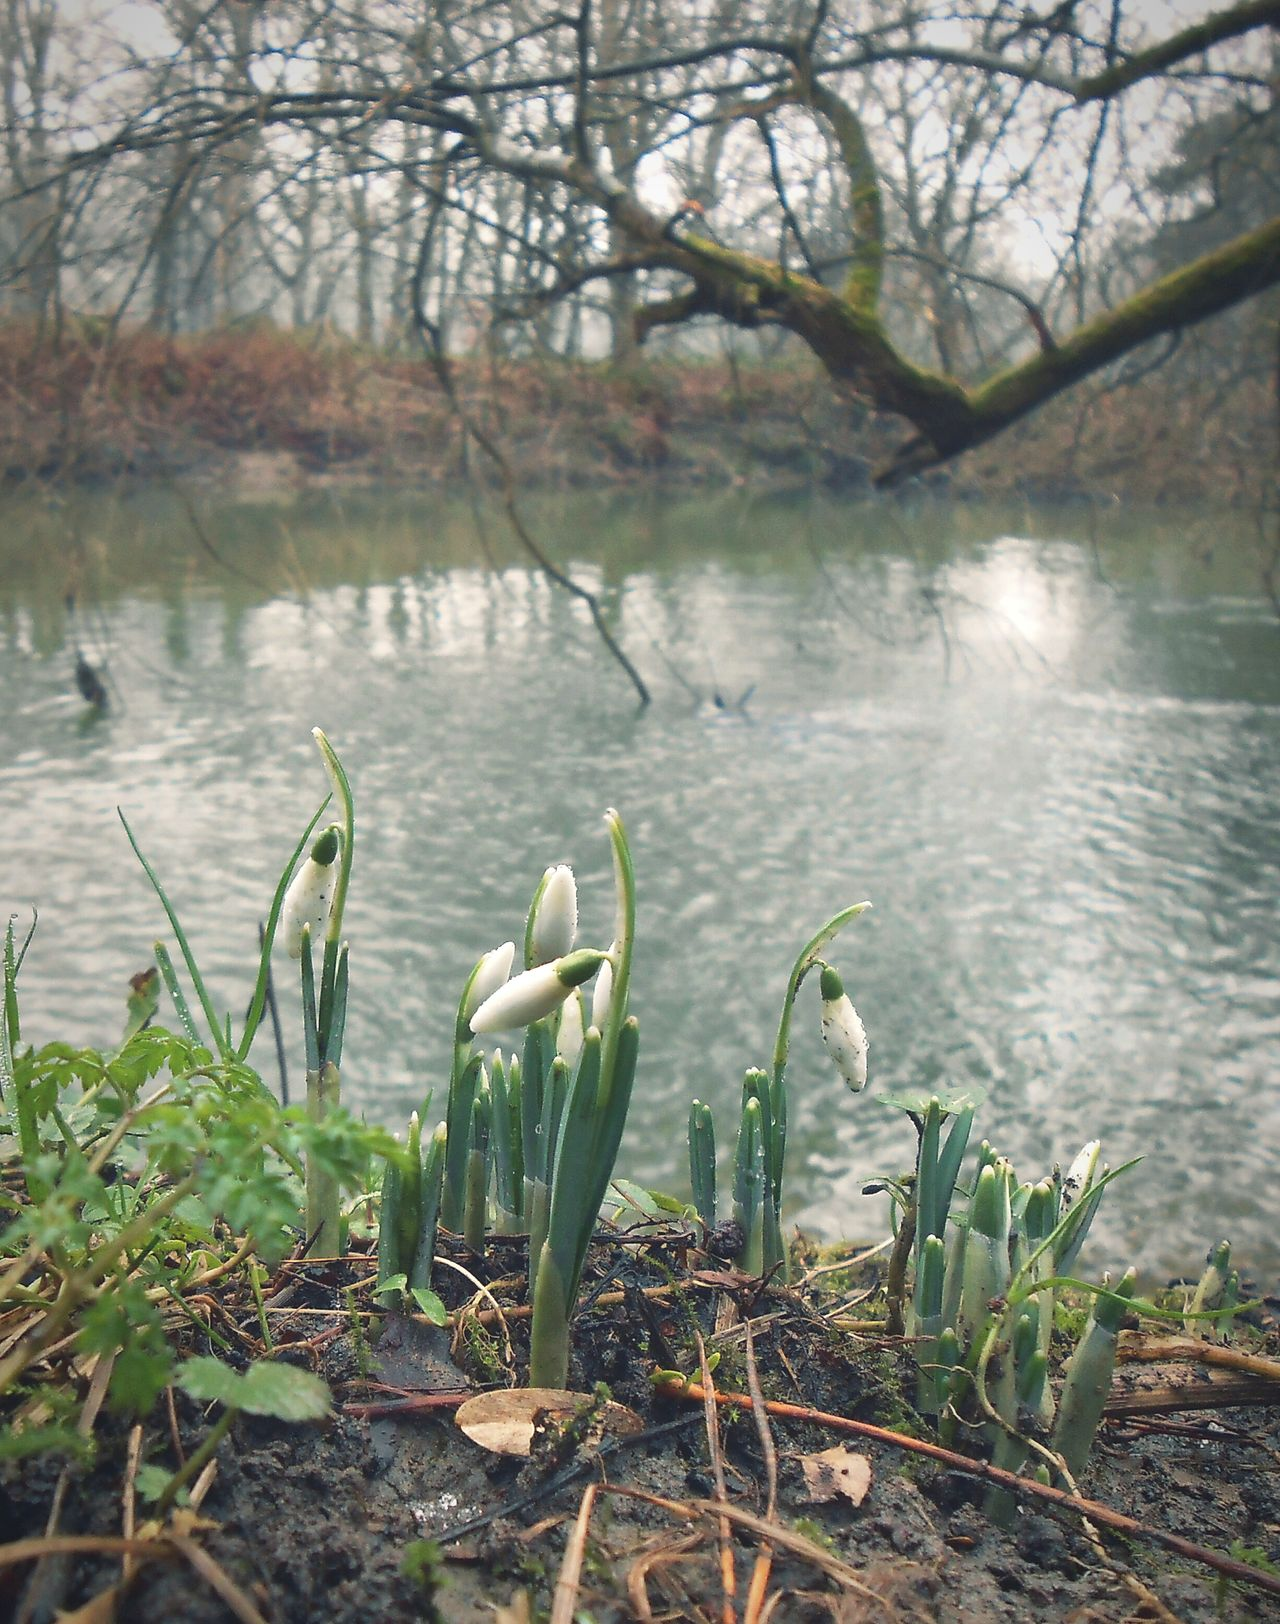 Chasing Spring in January. .. First Snowdrop s by the River . Newtown Powys Wales Winter Snowdrops подснежники река Flowers